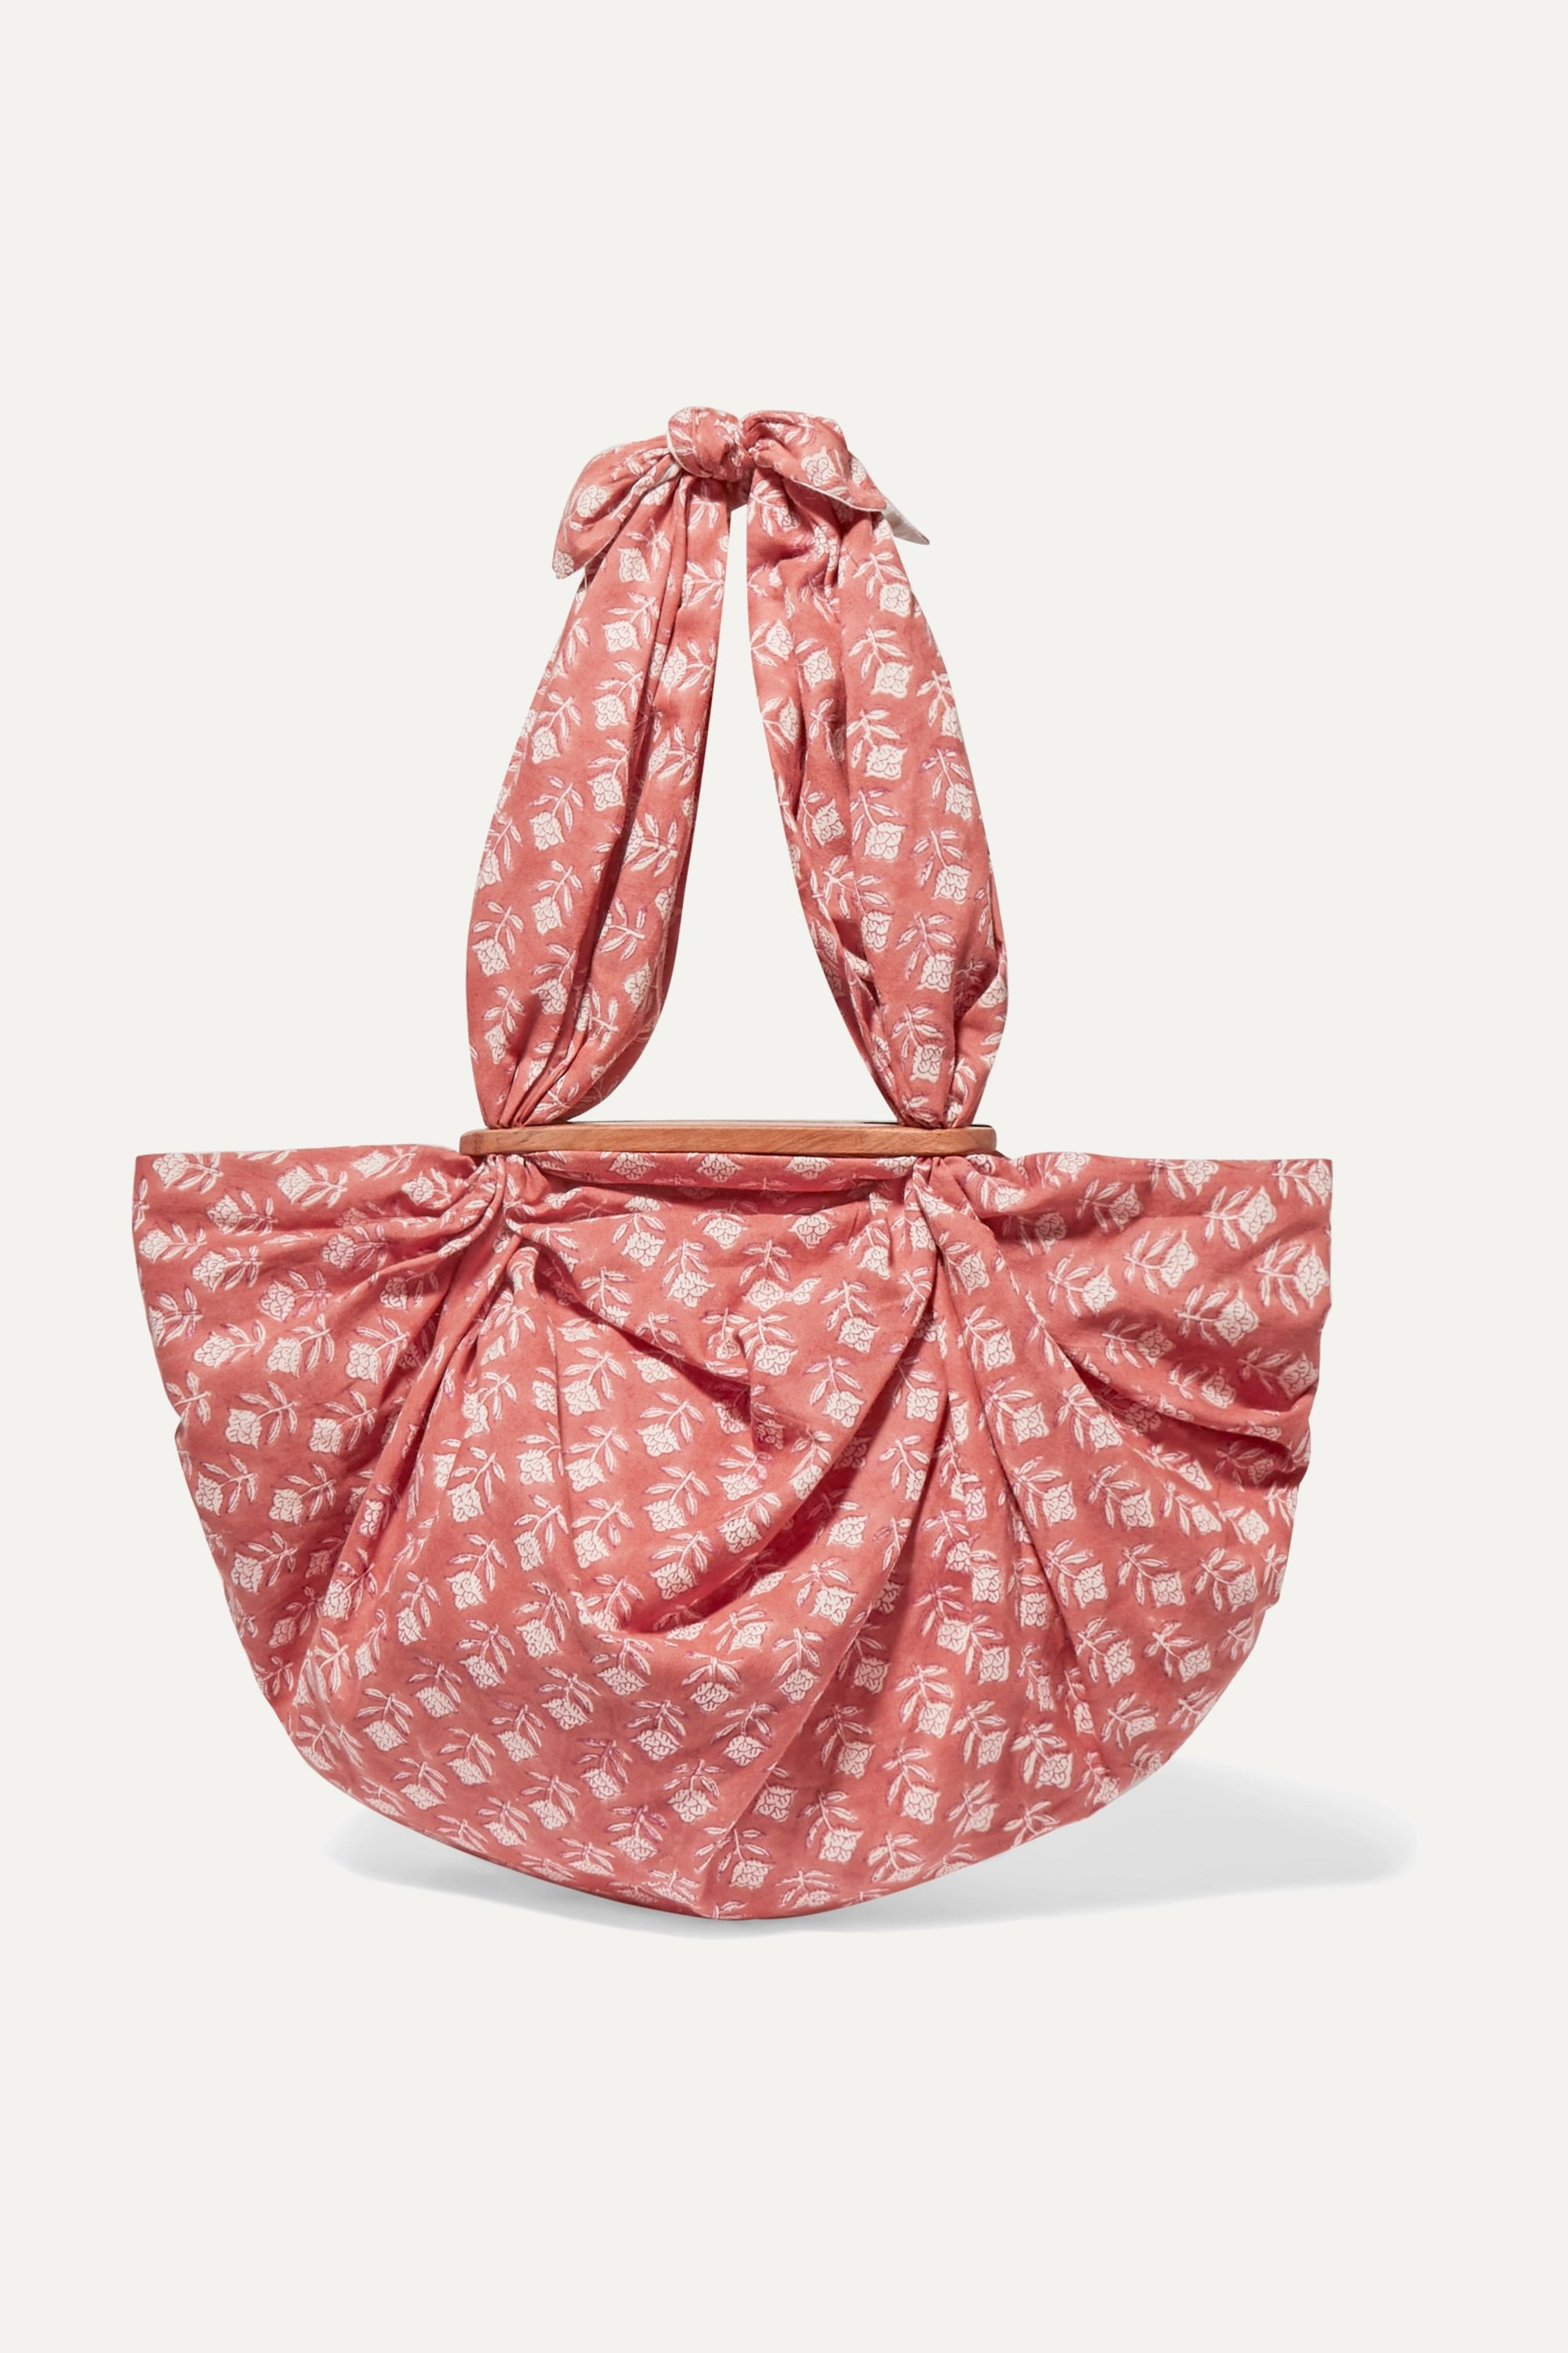 Emily Levine Tokyo knotted floral-print cotton-voile tote